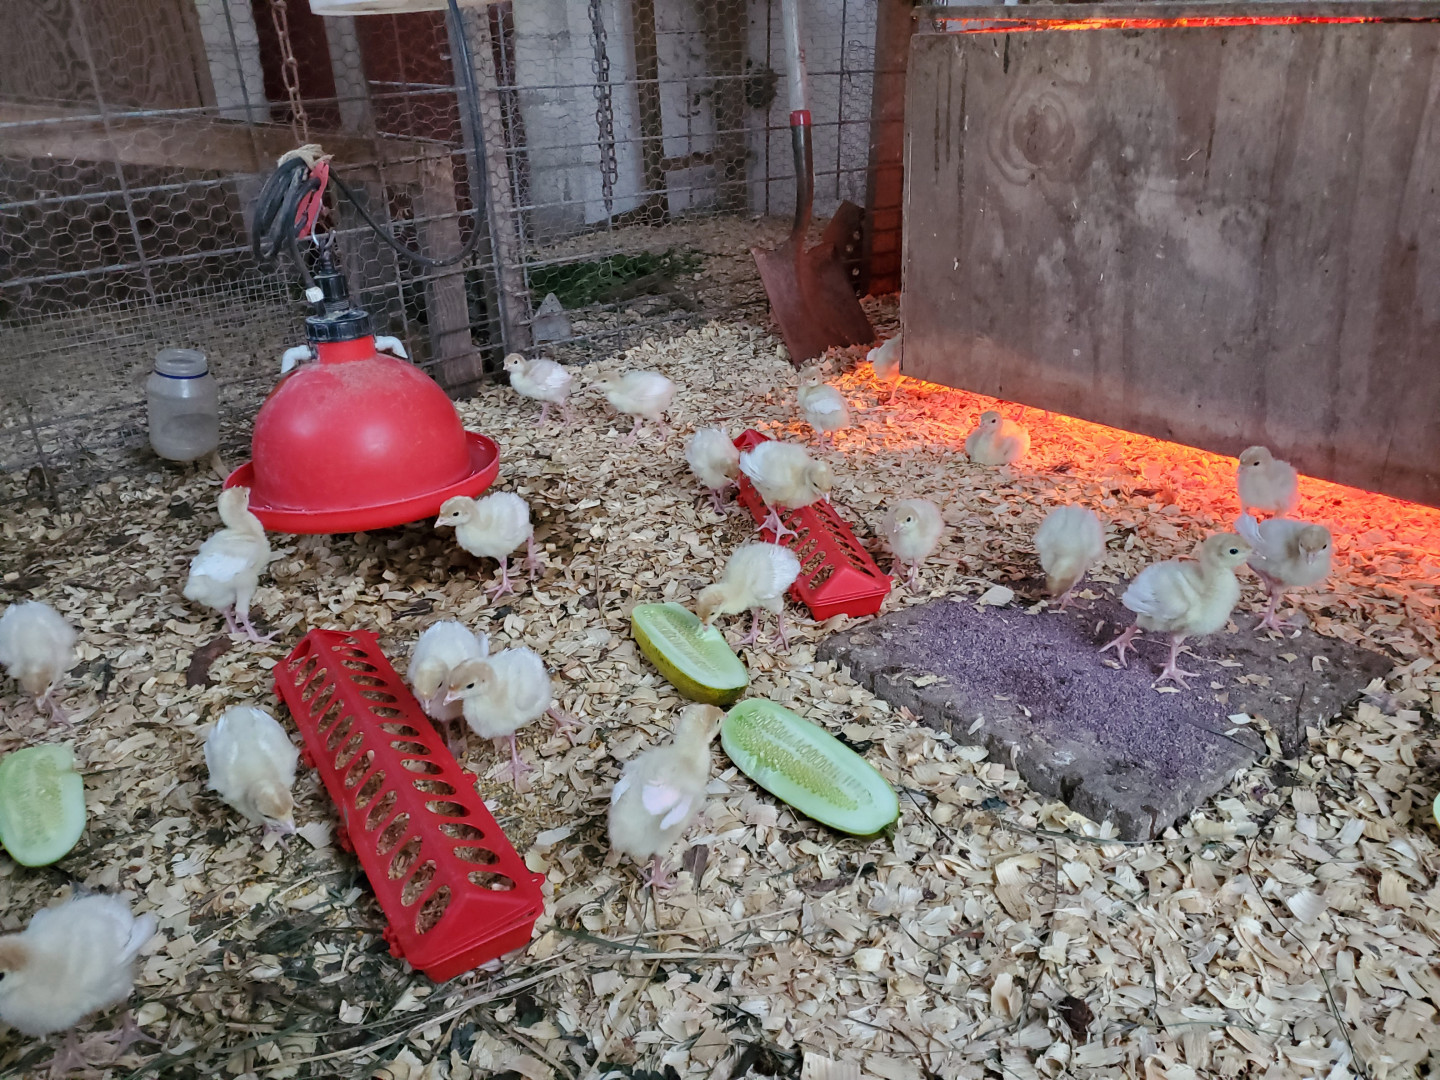 Turkey Poults Cucumber snack in the brooder